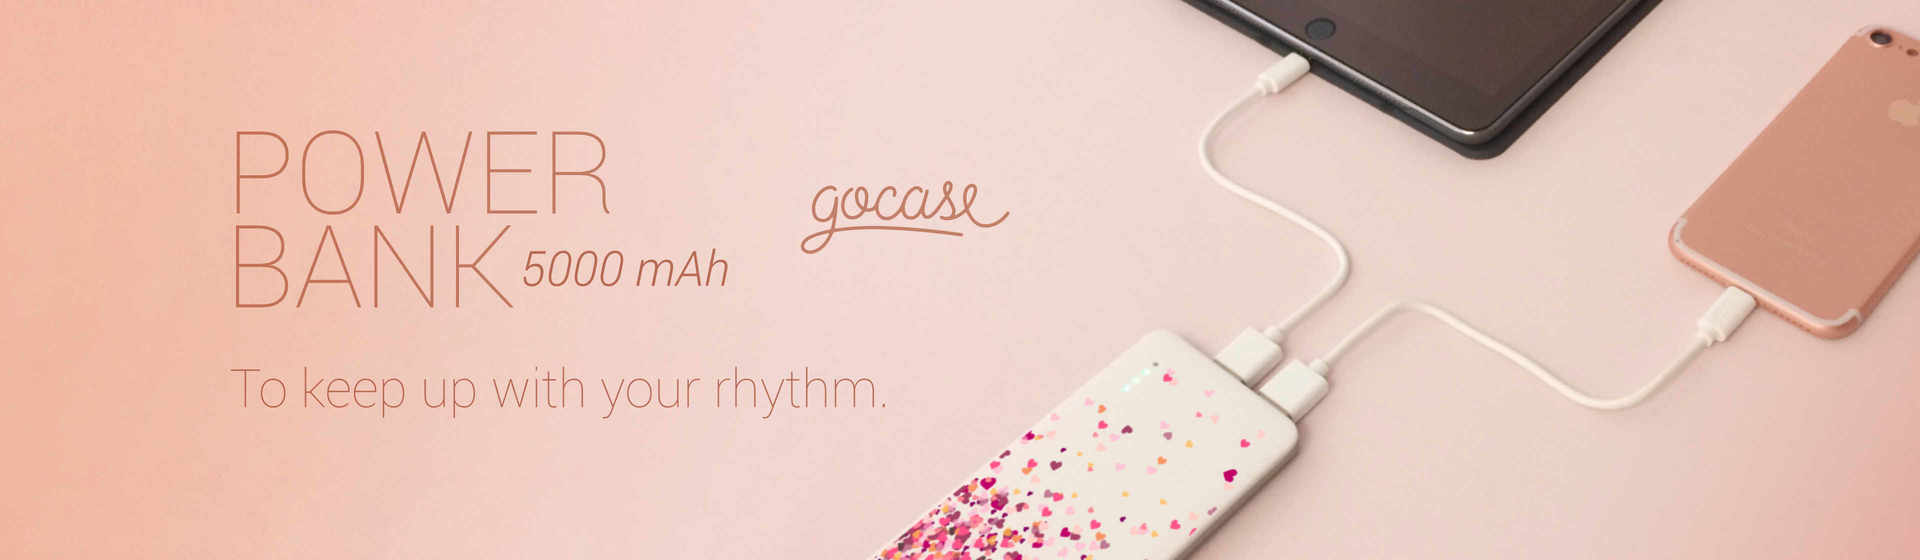 Powerbank 5000mAH to keep you up with your rhythm